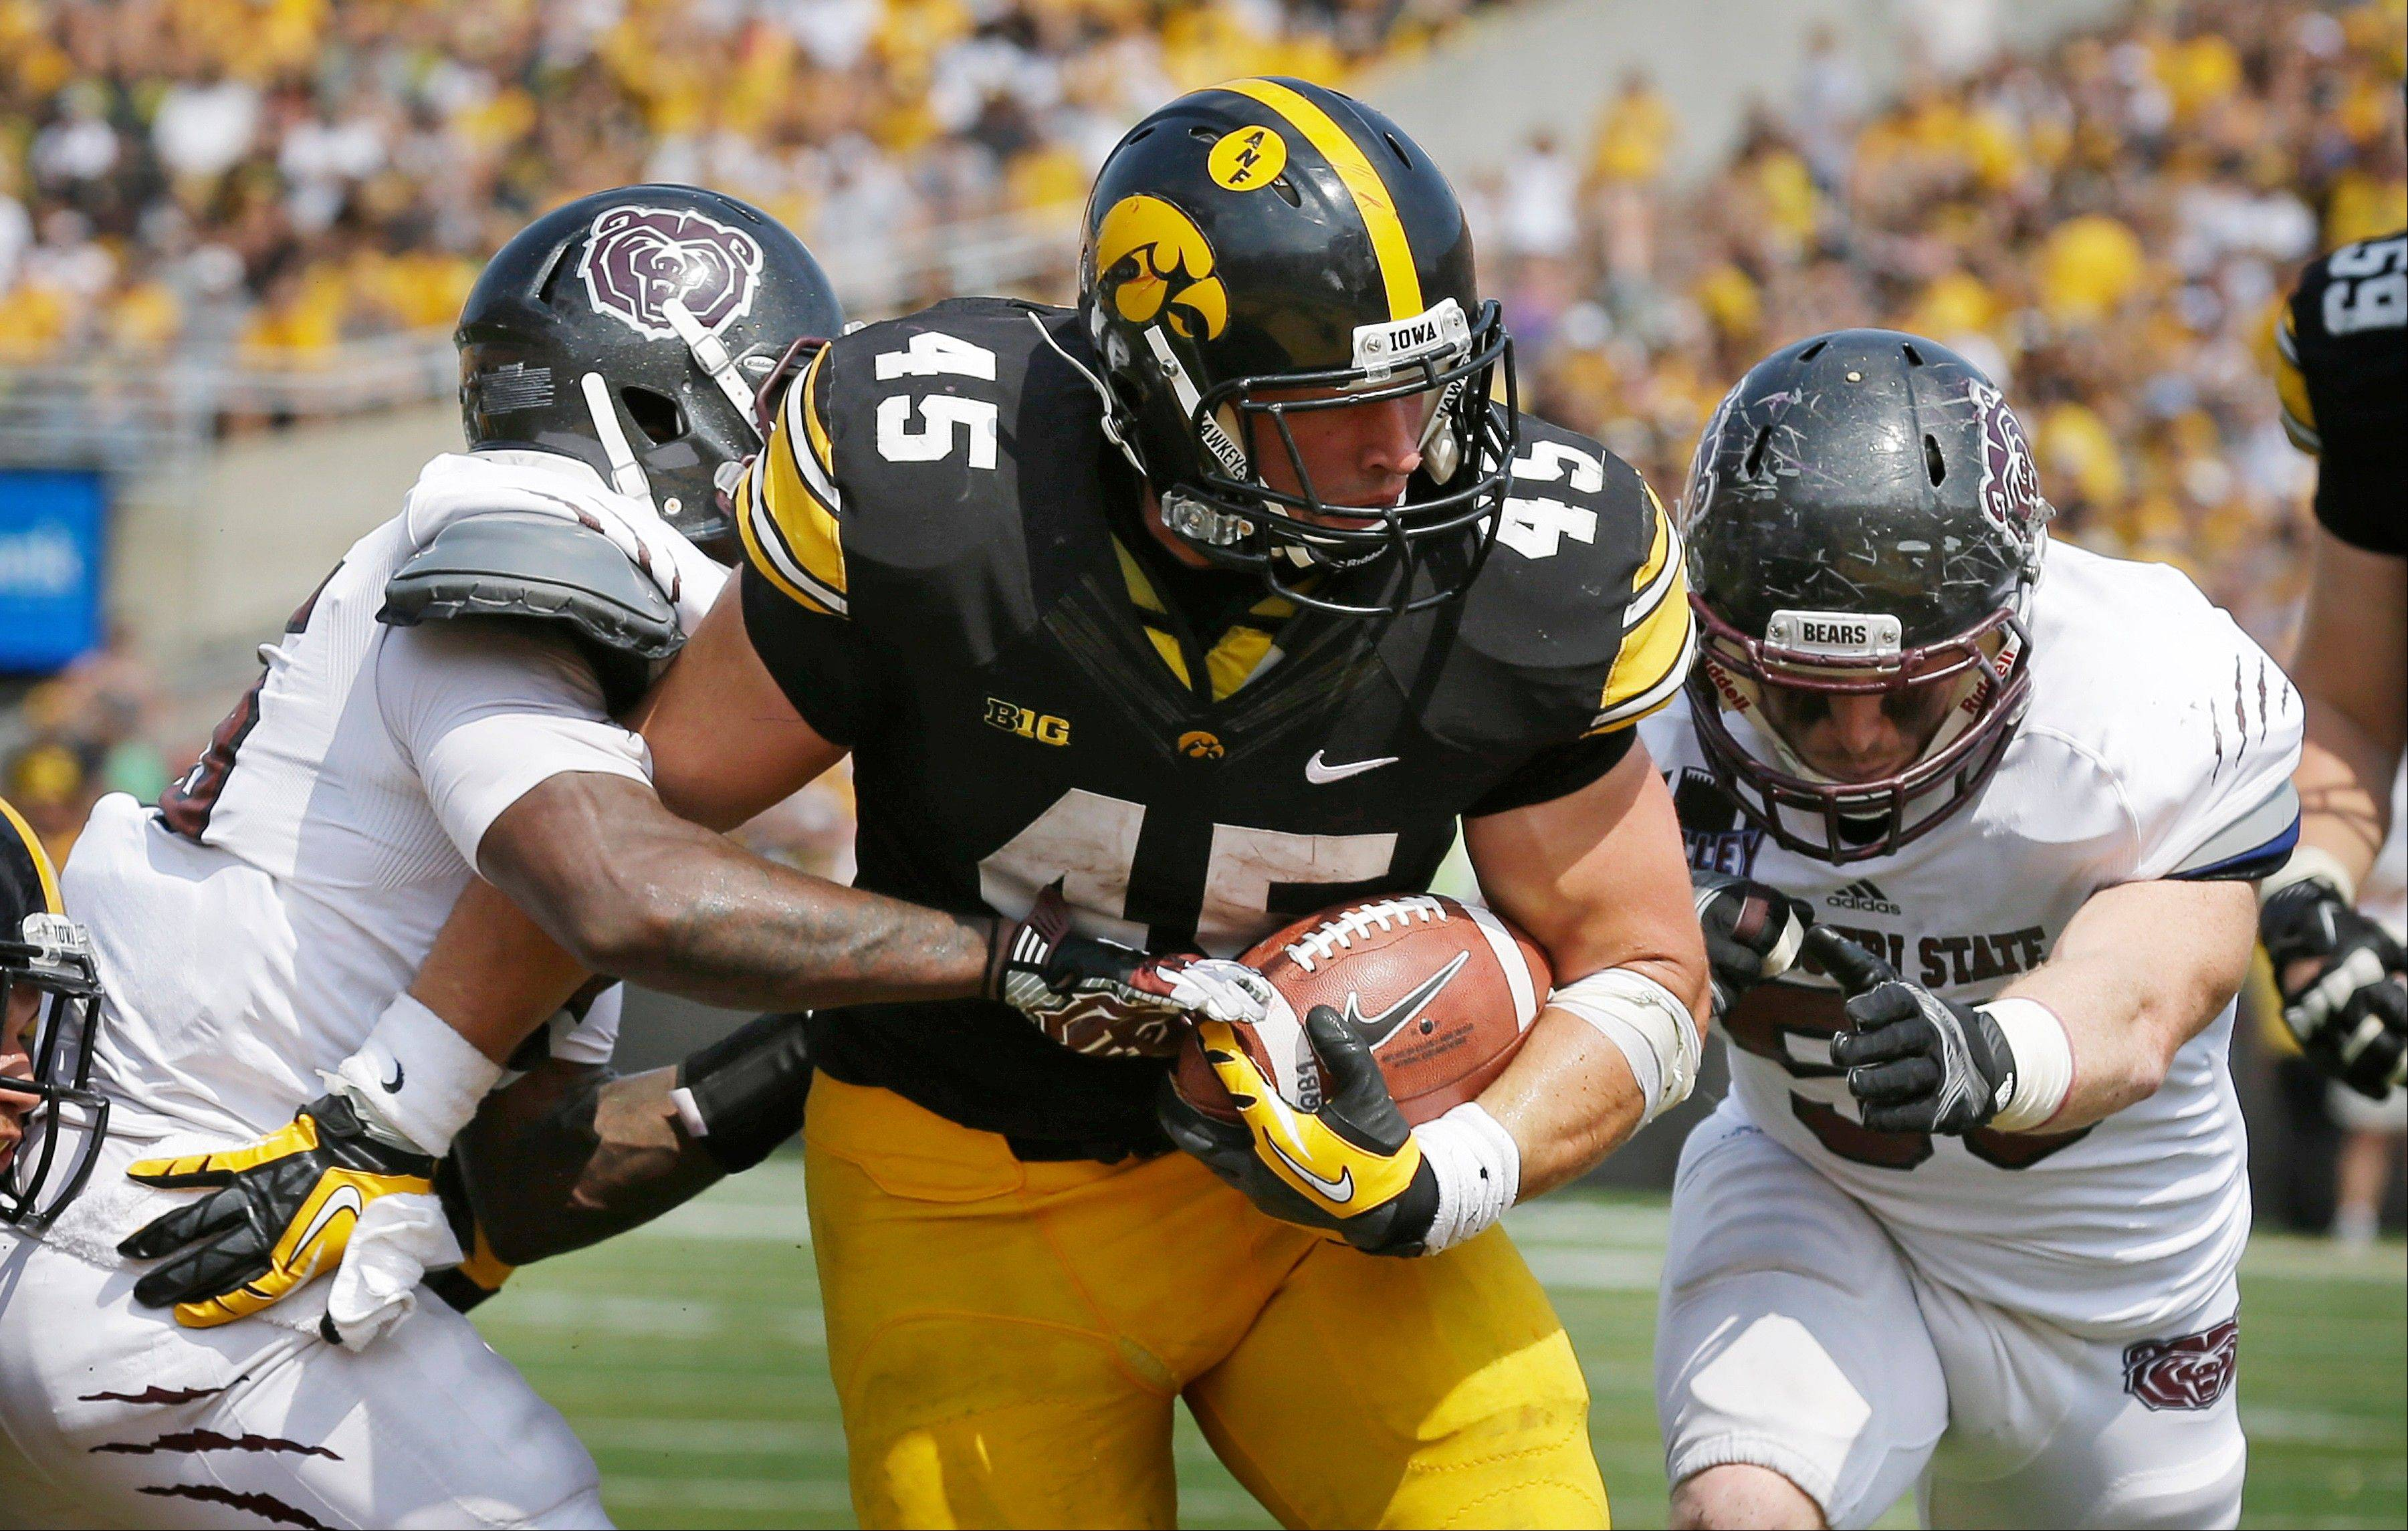 Iowa offense leans on Weisman